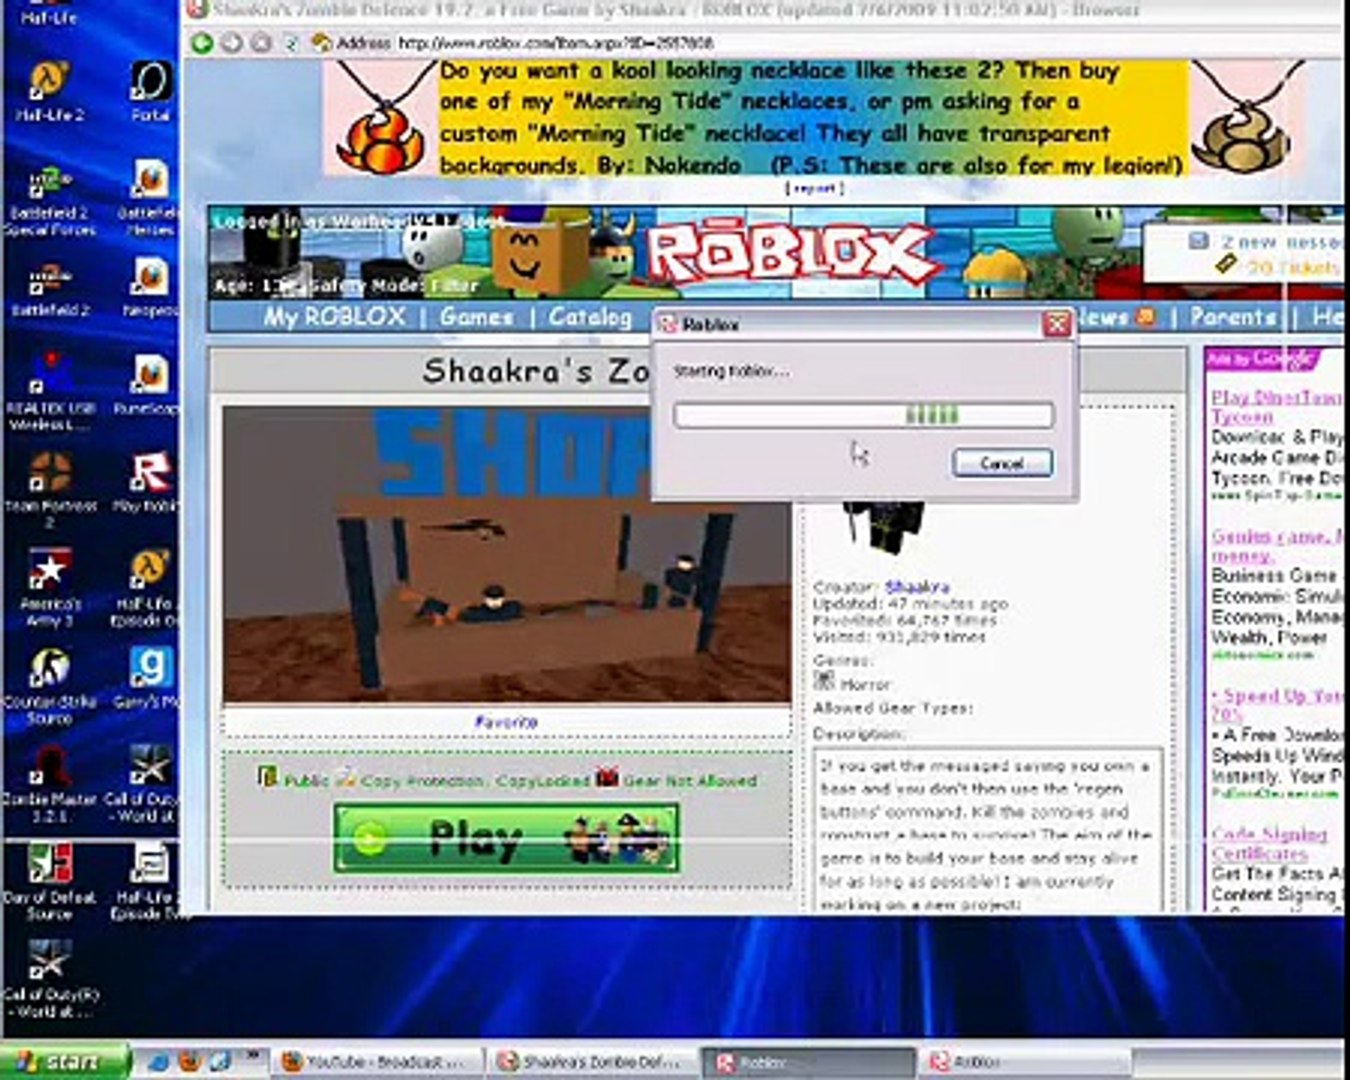 How To Hack In Roblox Without Cheat Engine Cheat Engine Roblox In Game Money Points Hack Video Dailymotion